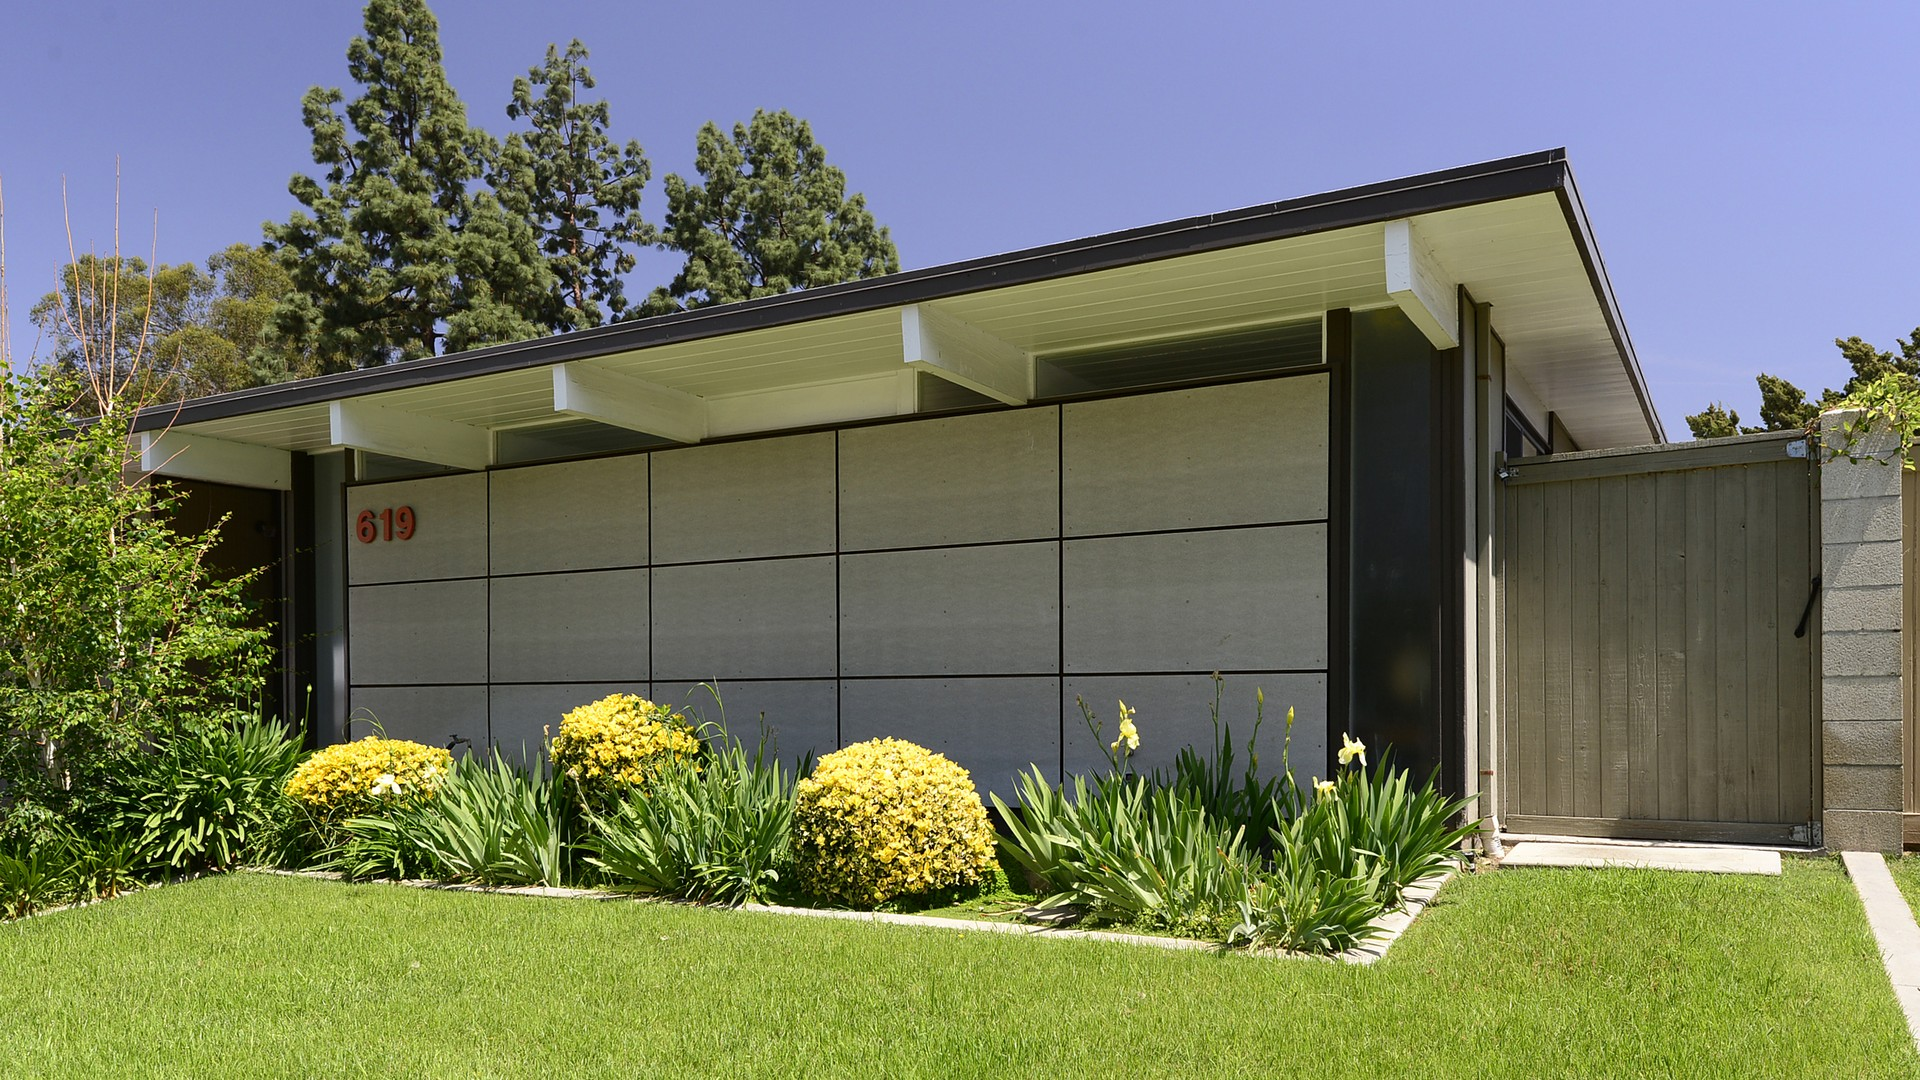 Eichler Homes in Southern California